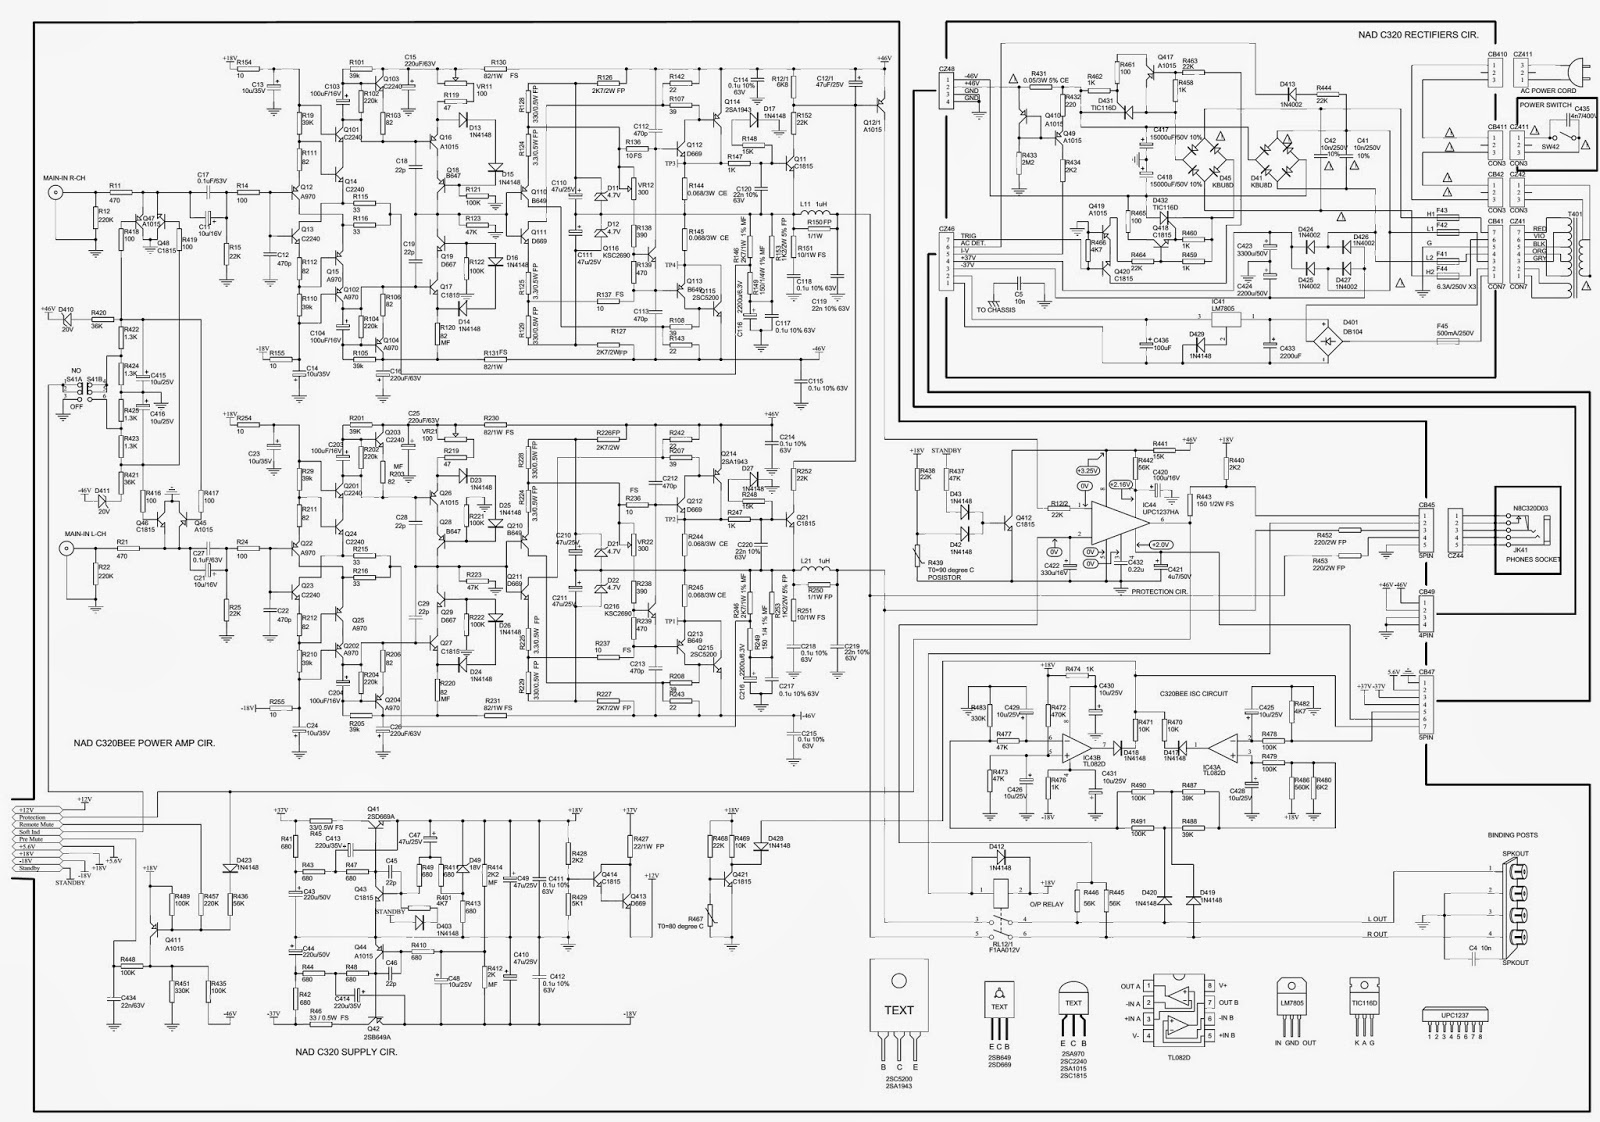 nad c 320 power amp schematic  circuit diagram  stereo 2sc5200 power amp circuit diagram 2sc5200 2sa1943 amplifier circuit diagram pcb pdf